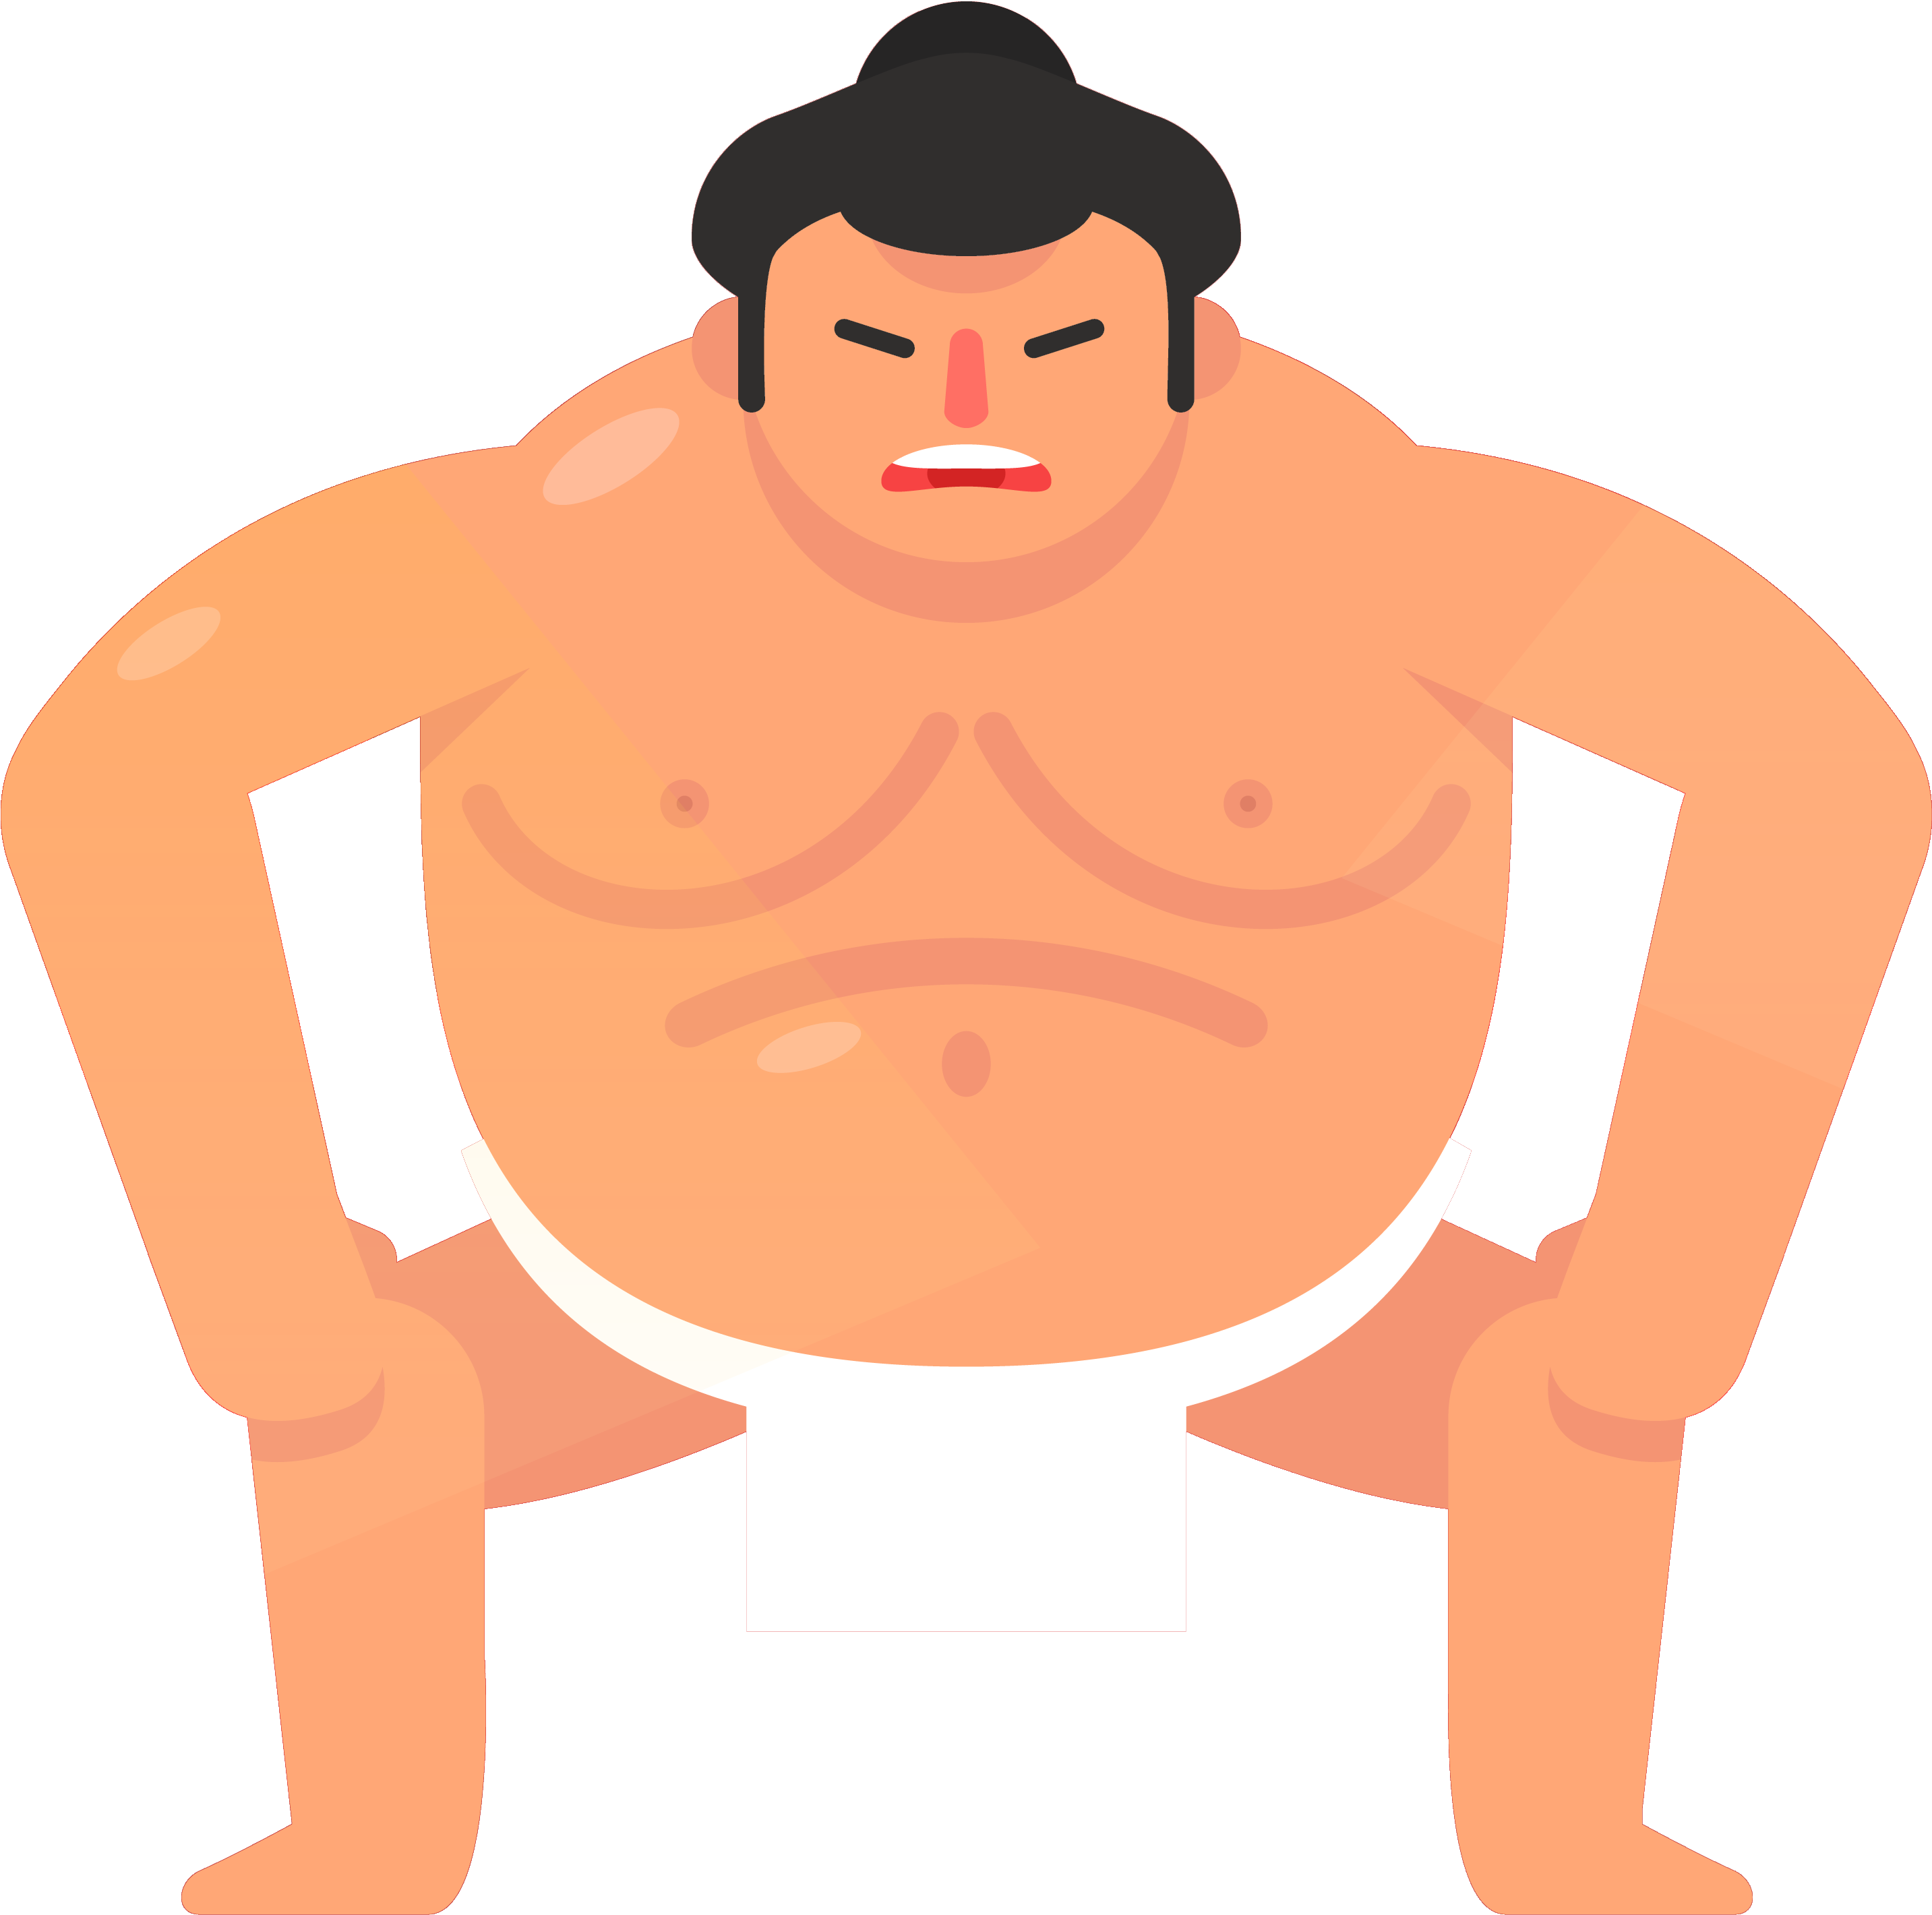 Wrestlers clipart muscular. Sumo wrestling cartoon clip